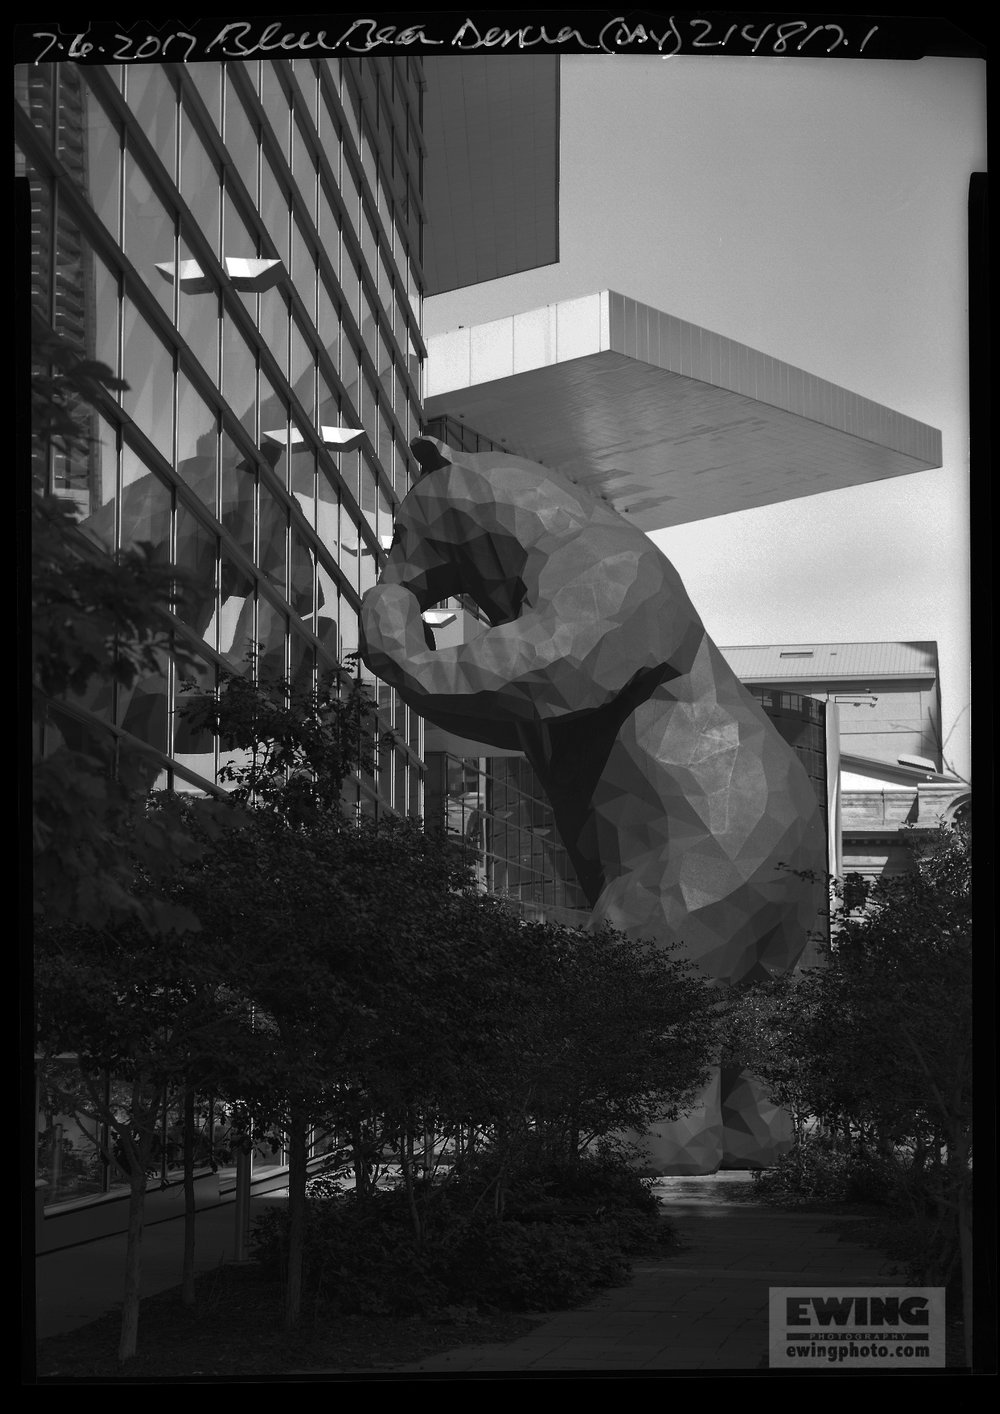 Blue Bear at Convention Center